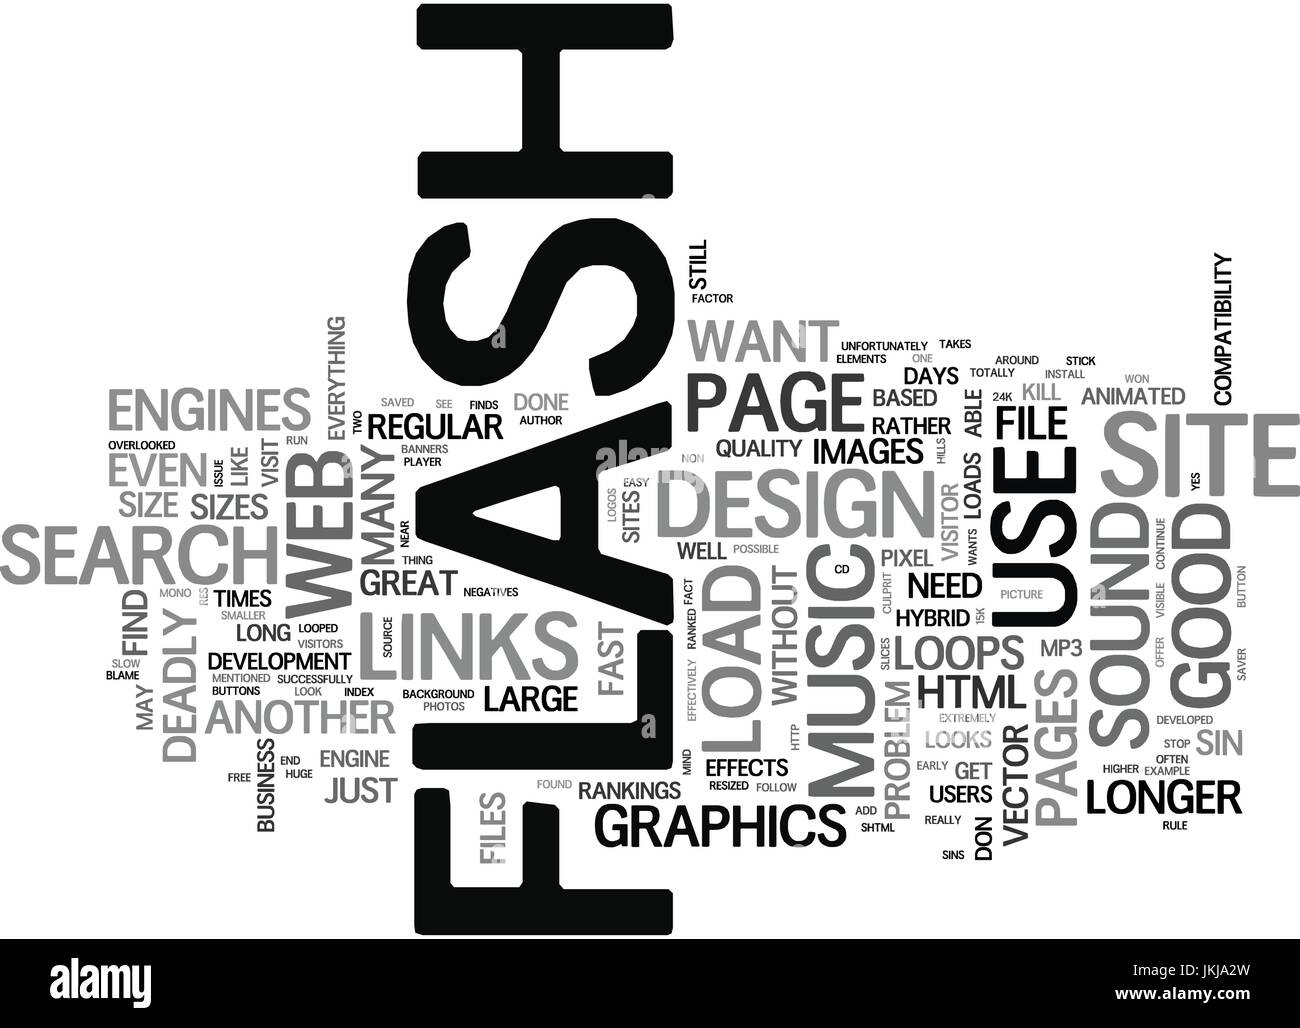 FLASH DEADLY SINS THAT CAN KILL YOUR WEB BUSINESS Text Background Word Cloud Concept - Stock Vector